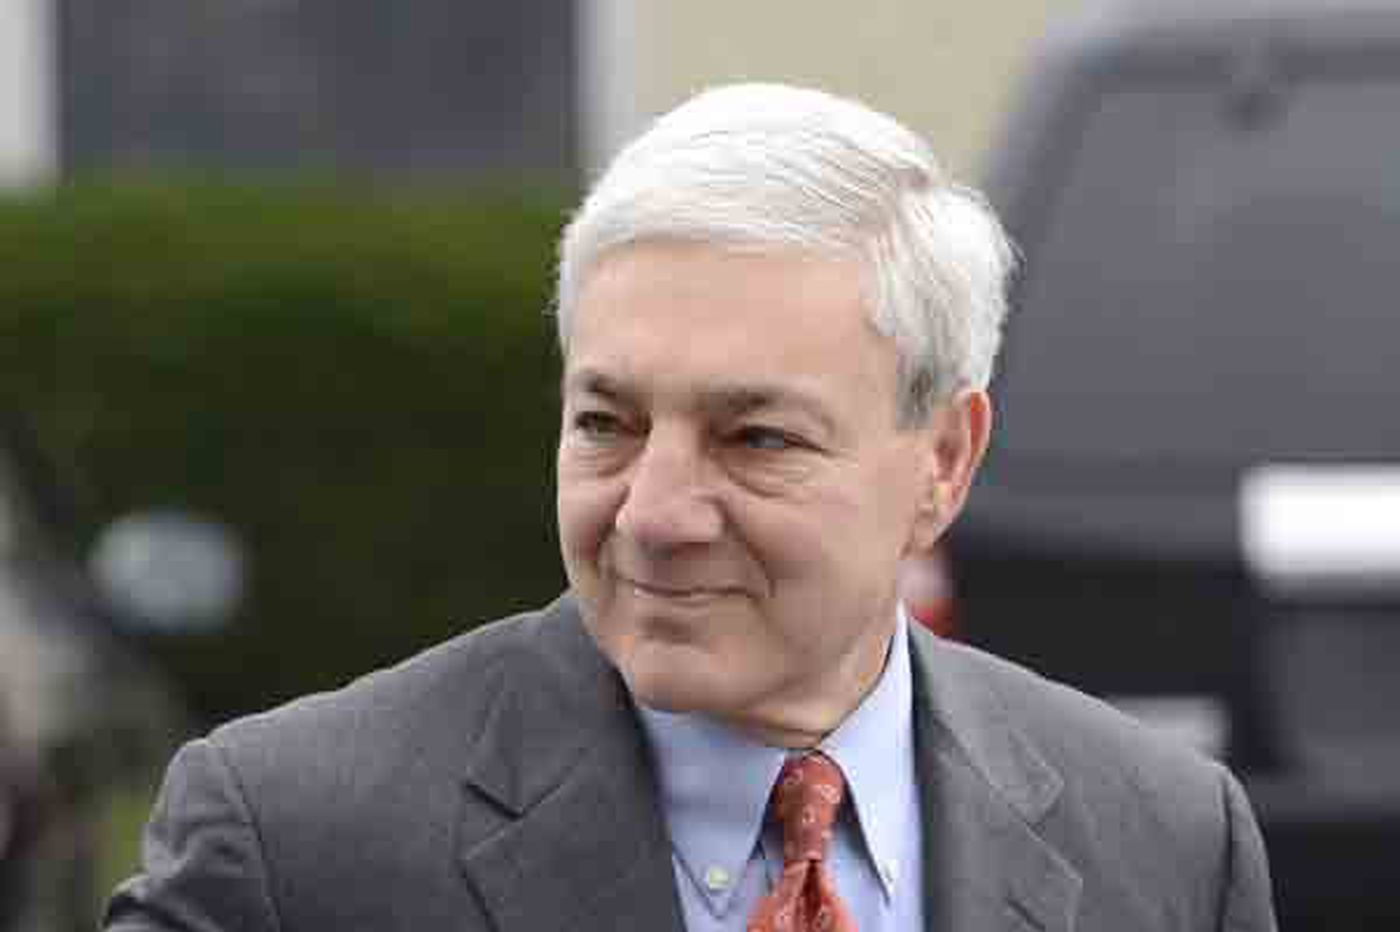 Spanier sues prosecutors, seeks dismissal of case